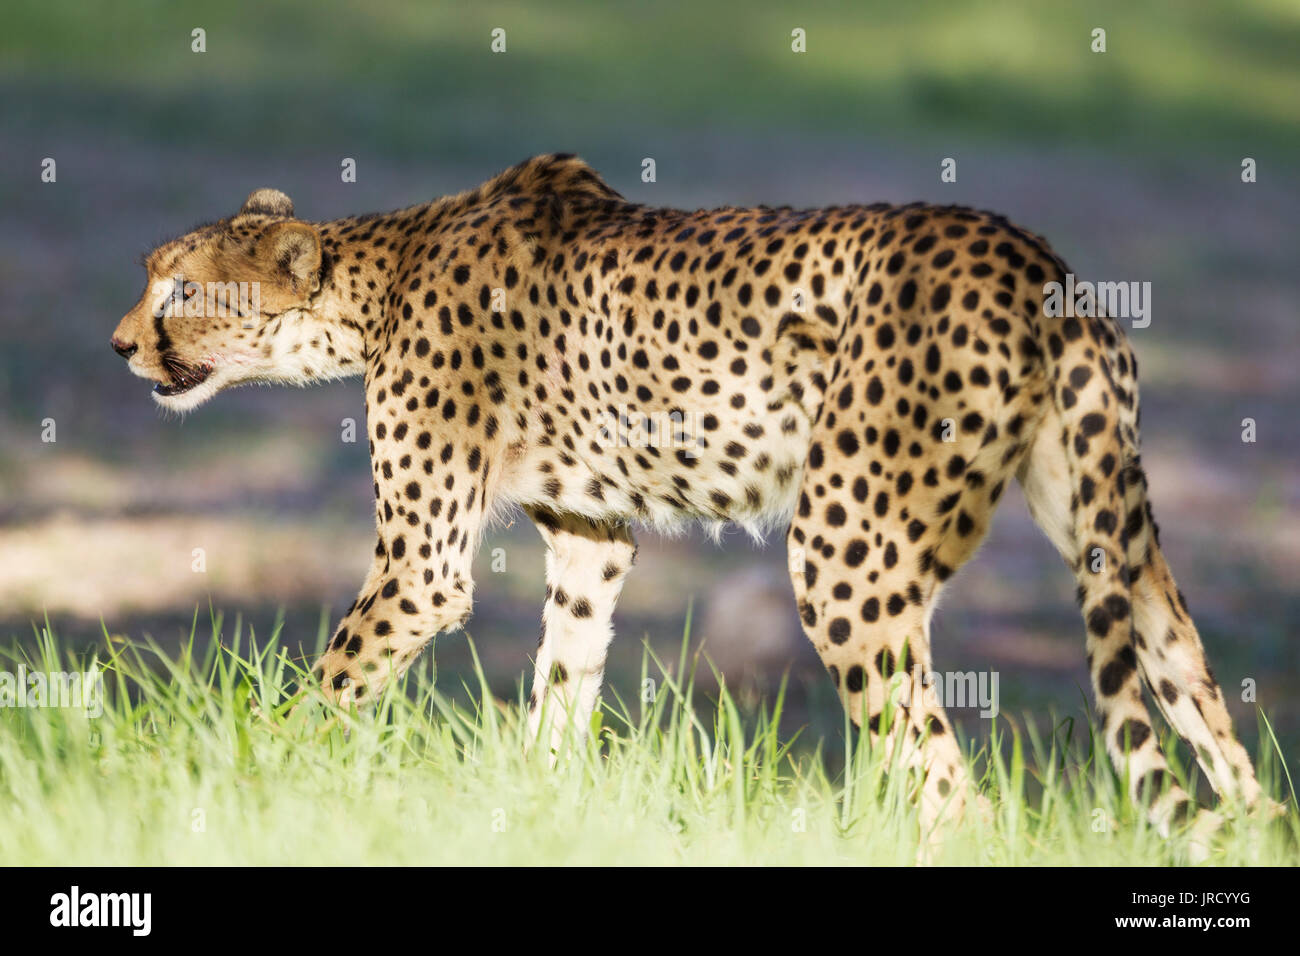 Cheetah (Acinonyx jubatus), female with blood at snout, Kalahari Desert, Kgalagadi Transfrontier Park, South Africa - Stock Image